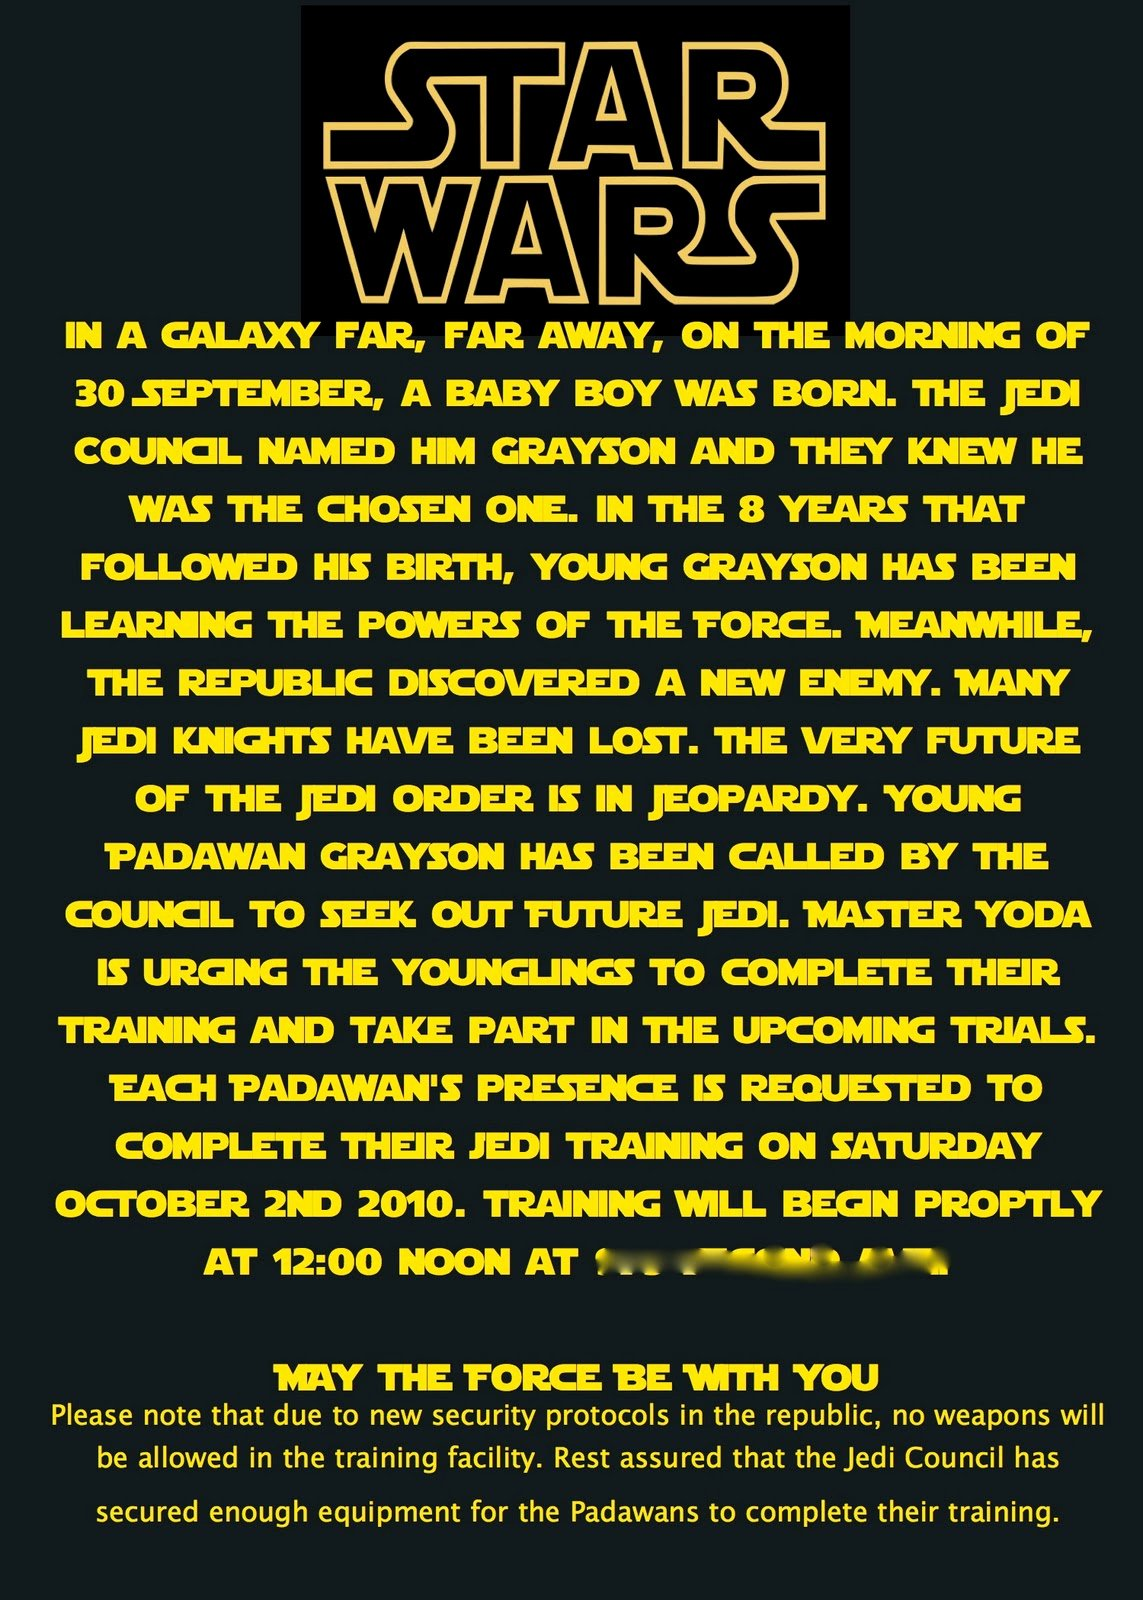 Star Wars Birthday Invitations Luxury at Second Street Star Wars Party What I Did